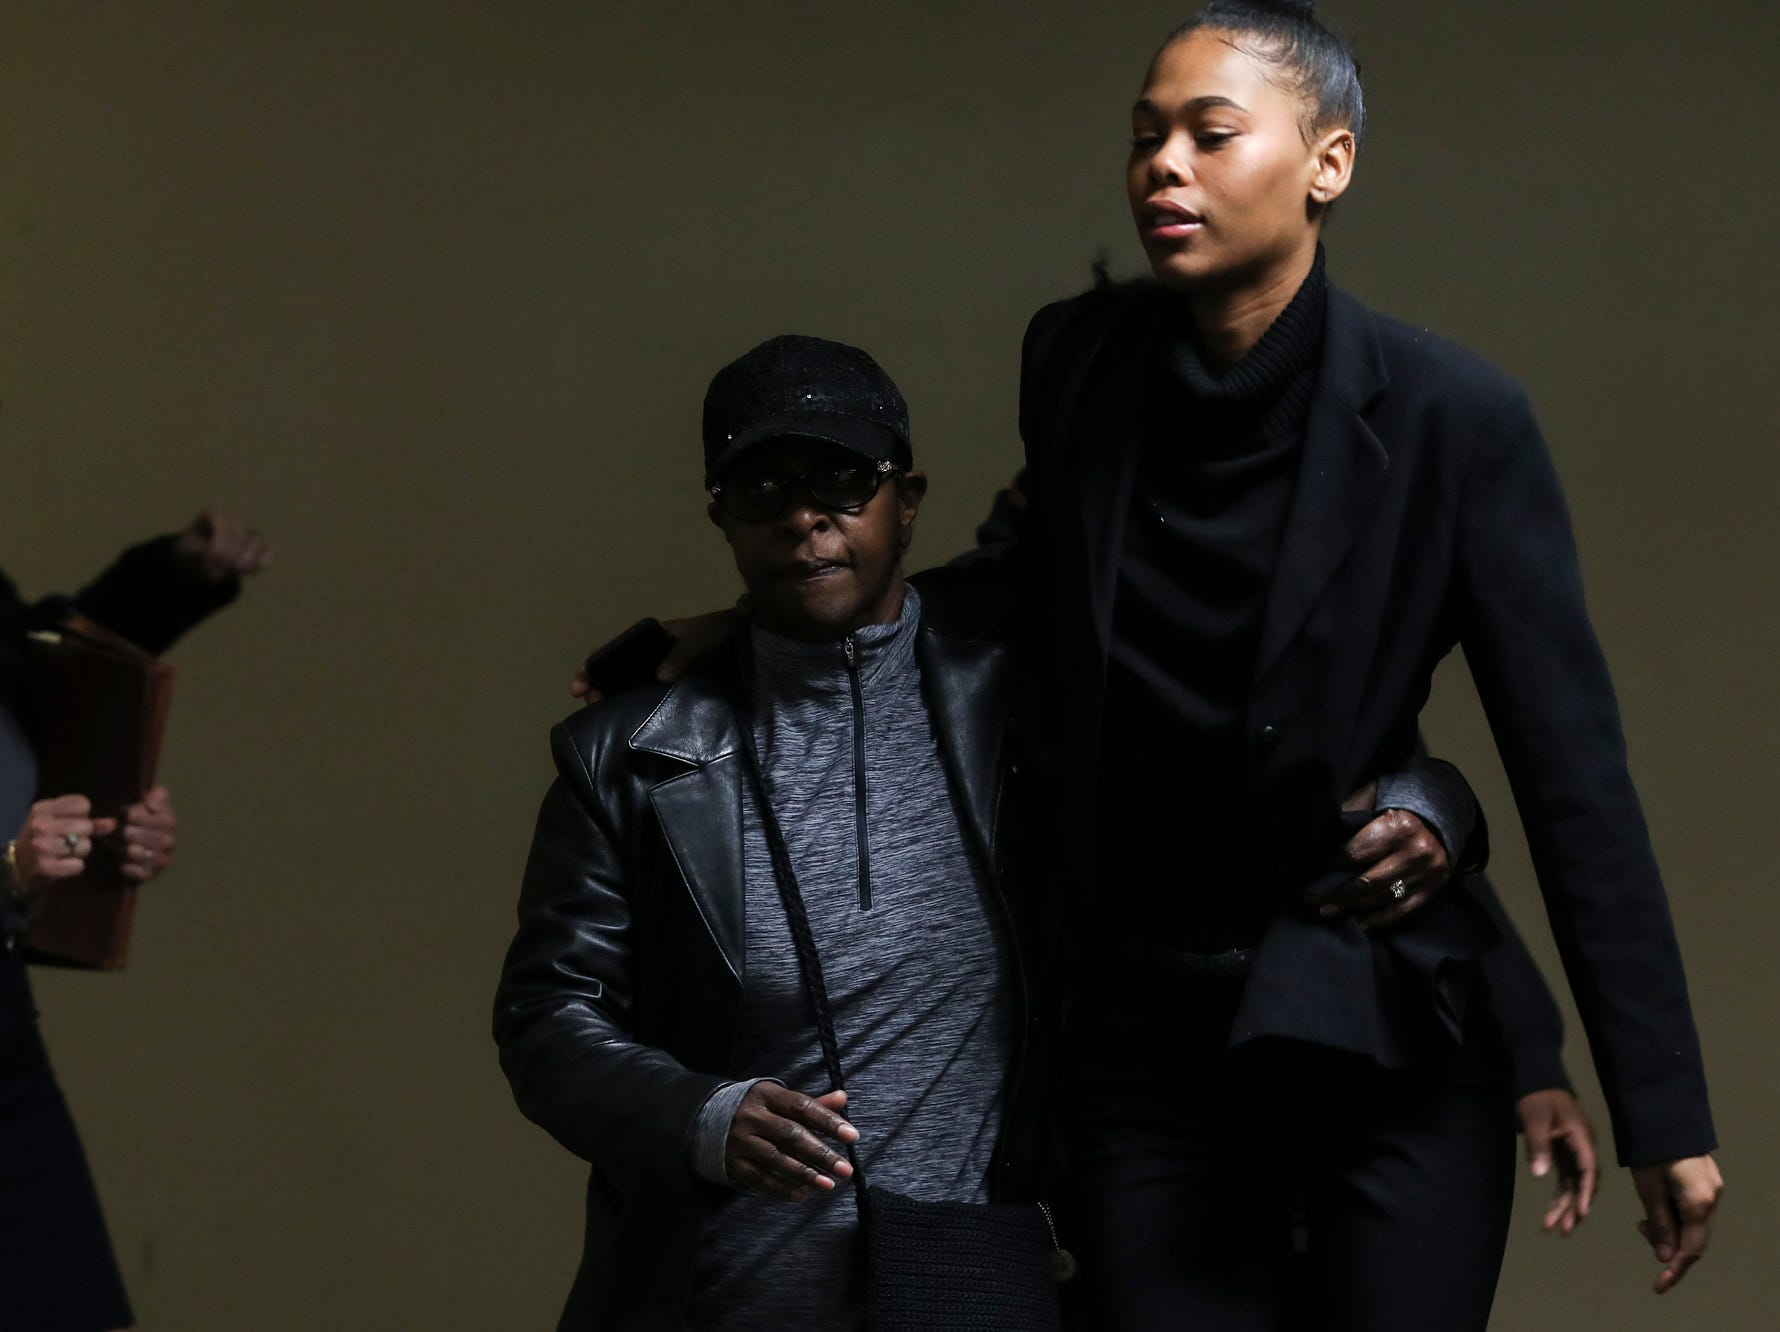 November 29 2018 - Loren Wright, right, daughter of Lorenzen and Sherra Wright, is seen after a trial date of Sept. 16, 2019 was set on Thursday before Criminal Court Judge Lee Coffee. Sherra Wright and Billy Ray Turner are charged with first-degree murder in Lorenzen Wright's July 2010 shooting death.